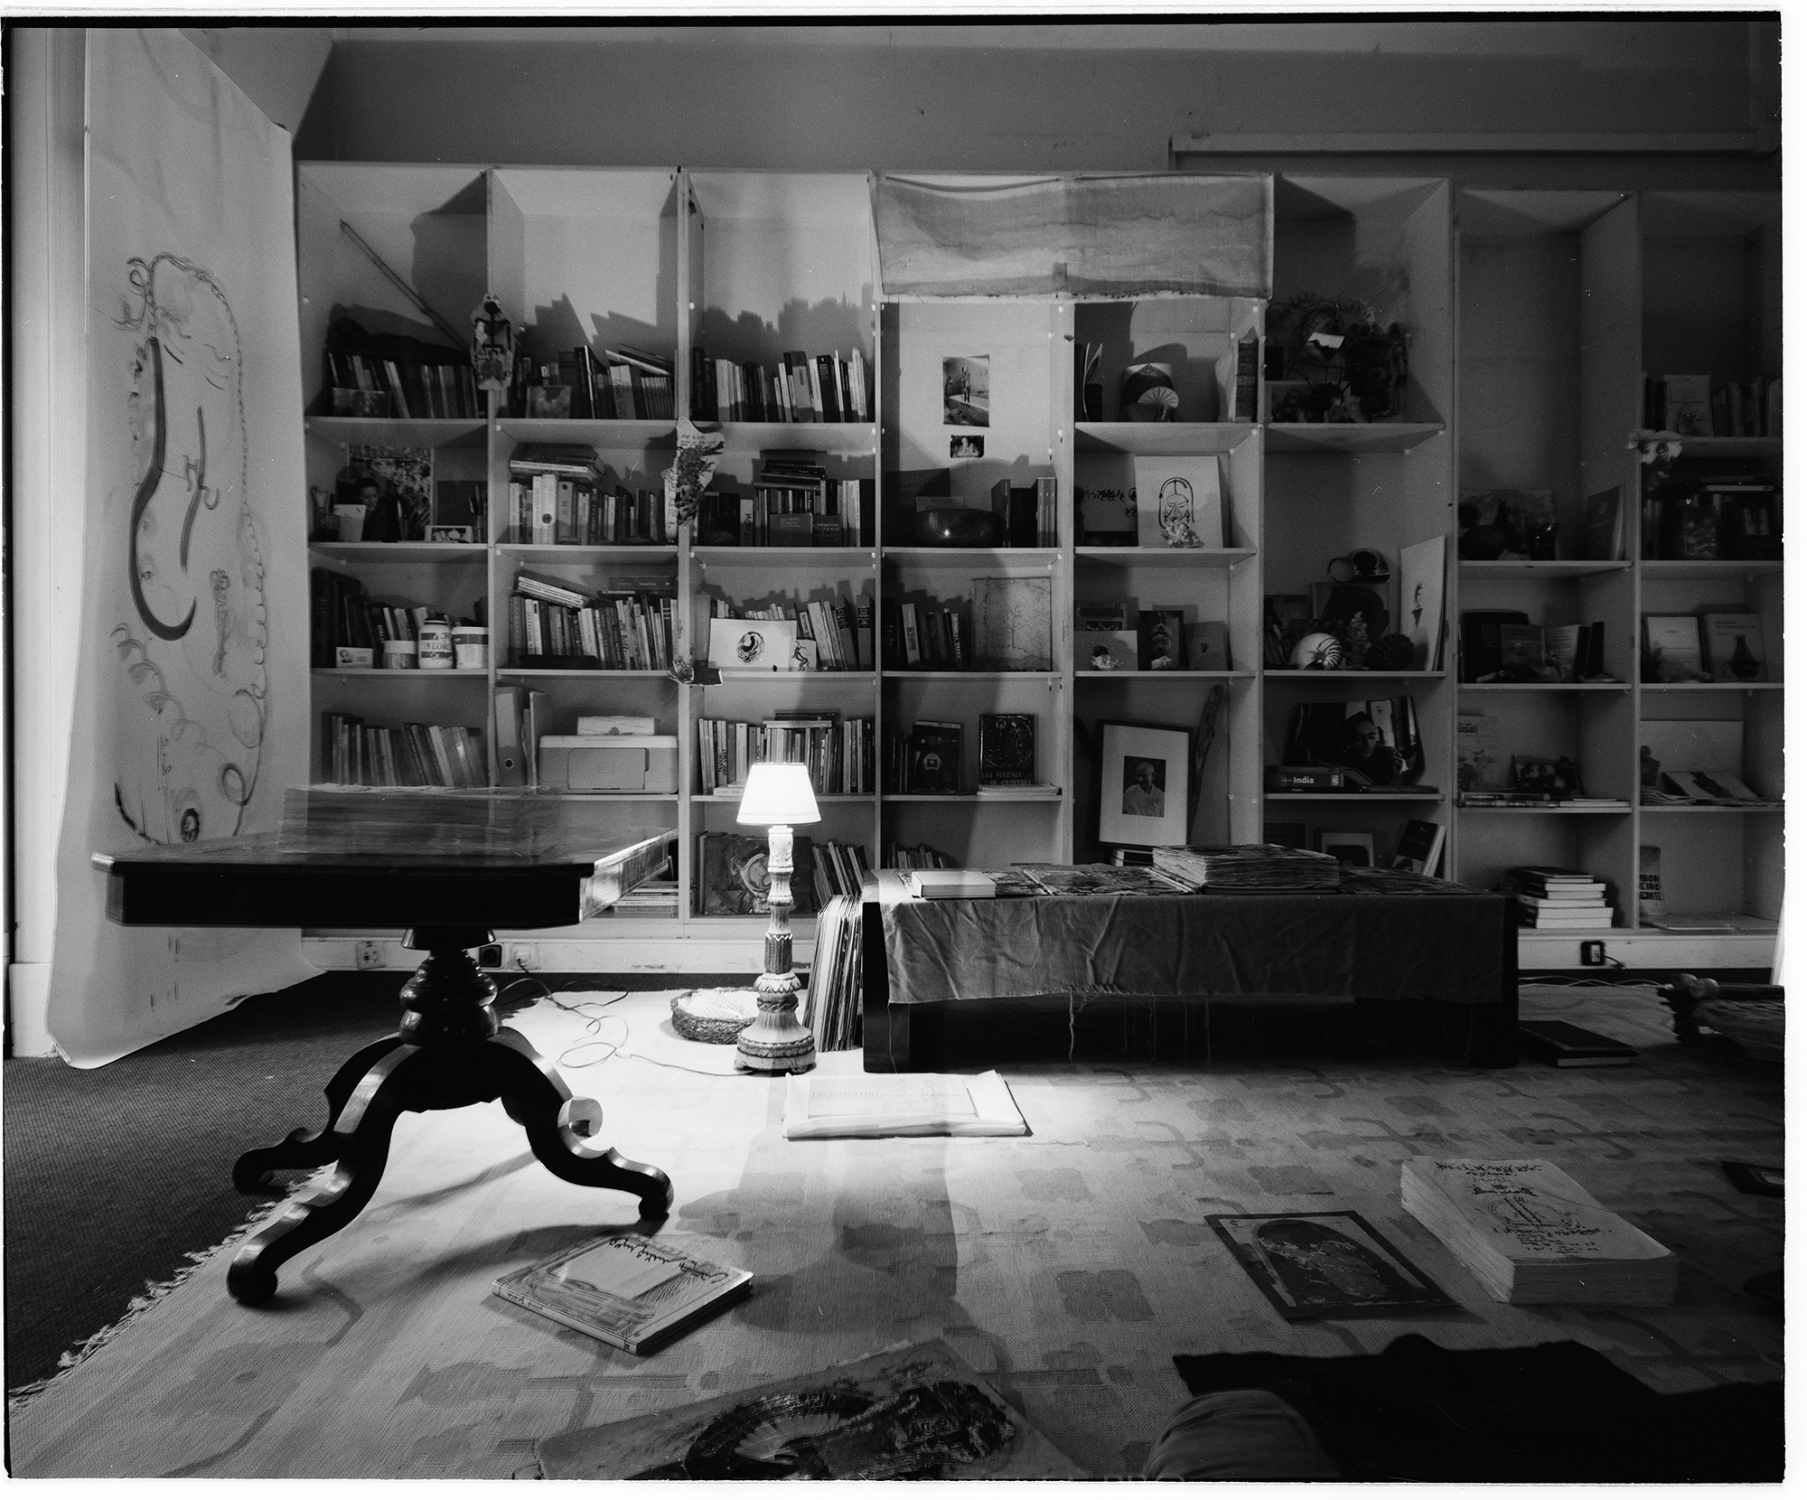 Antonio Poppe in the studio, Lisbon, Portugal. In 2014. This image was made with black and white  film and Mamyia 7II camera, in 6x7 format. This numbered copied was processed in Ilford FB glossy paper, 50x60cm.